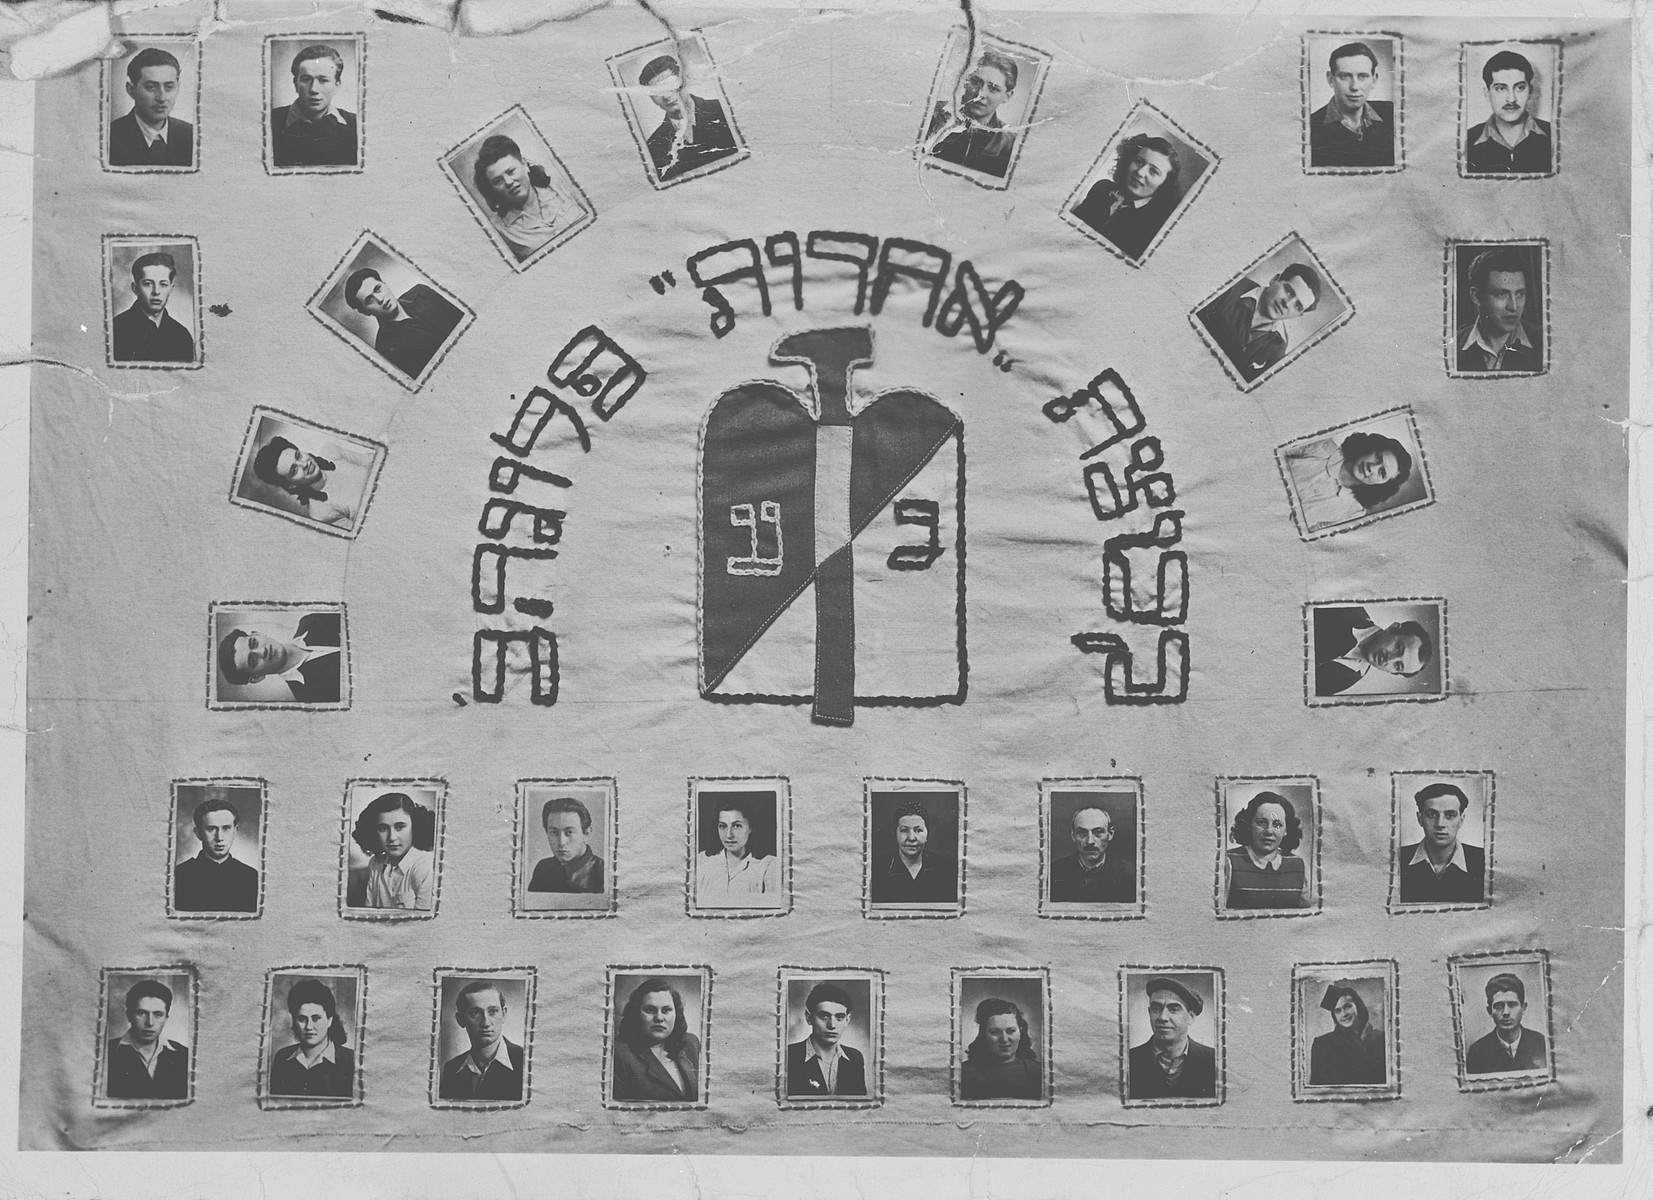 Composite picture of the members of the religious Zionist youth movement, Bnai Akiva, in the Foehrenwald displaced persons' camp.  Pictured on the far right, second from the top is Avram Melamed who later became a member of the Israeli parliament.